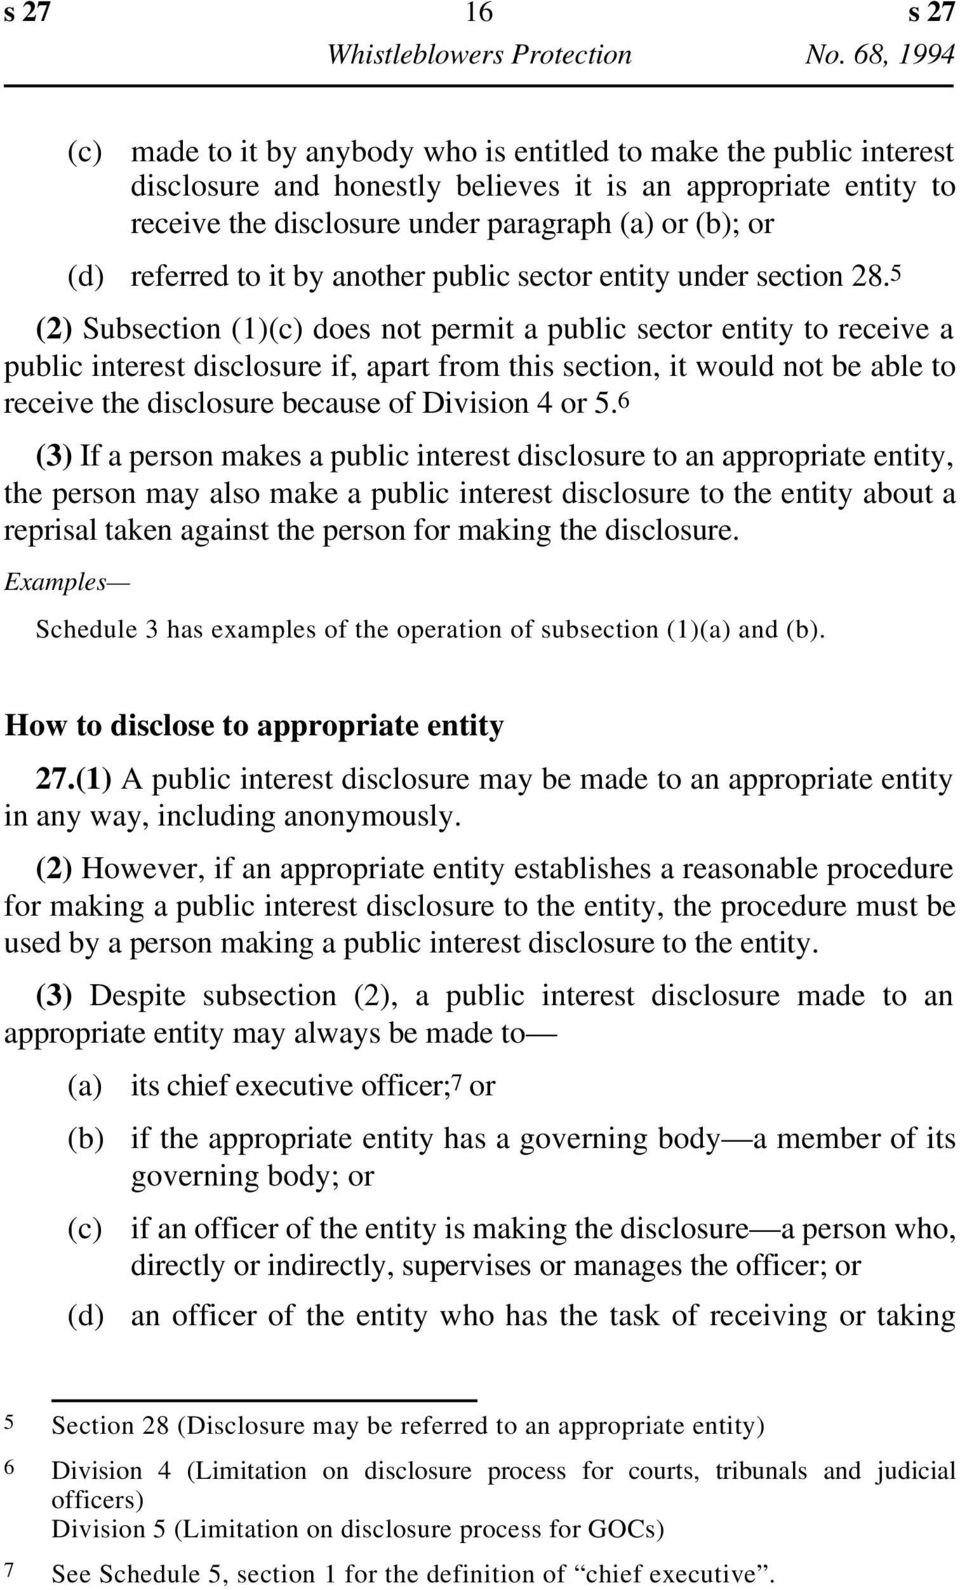 5 (2) Subsection (1)(c) does not permit a public sector entity to receive a public interest disclosure if, apart from this section, it would not be able to receive the disclosure because of Division